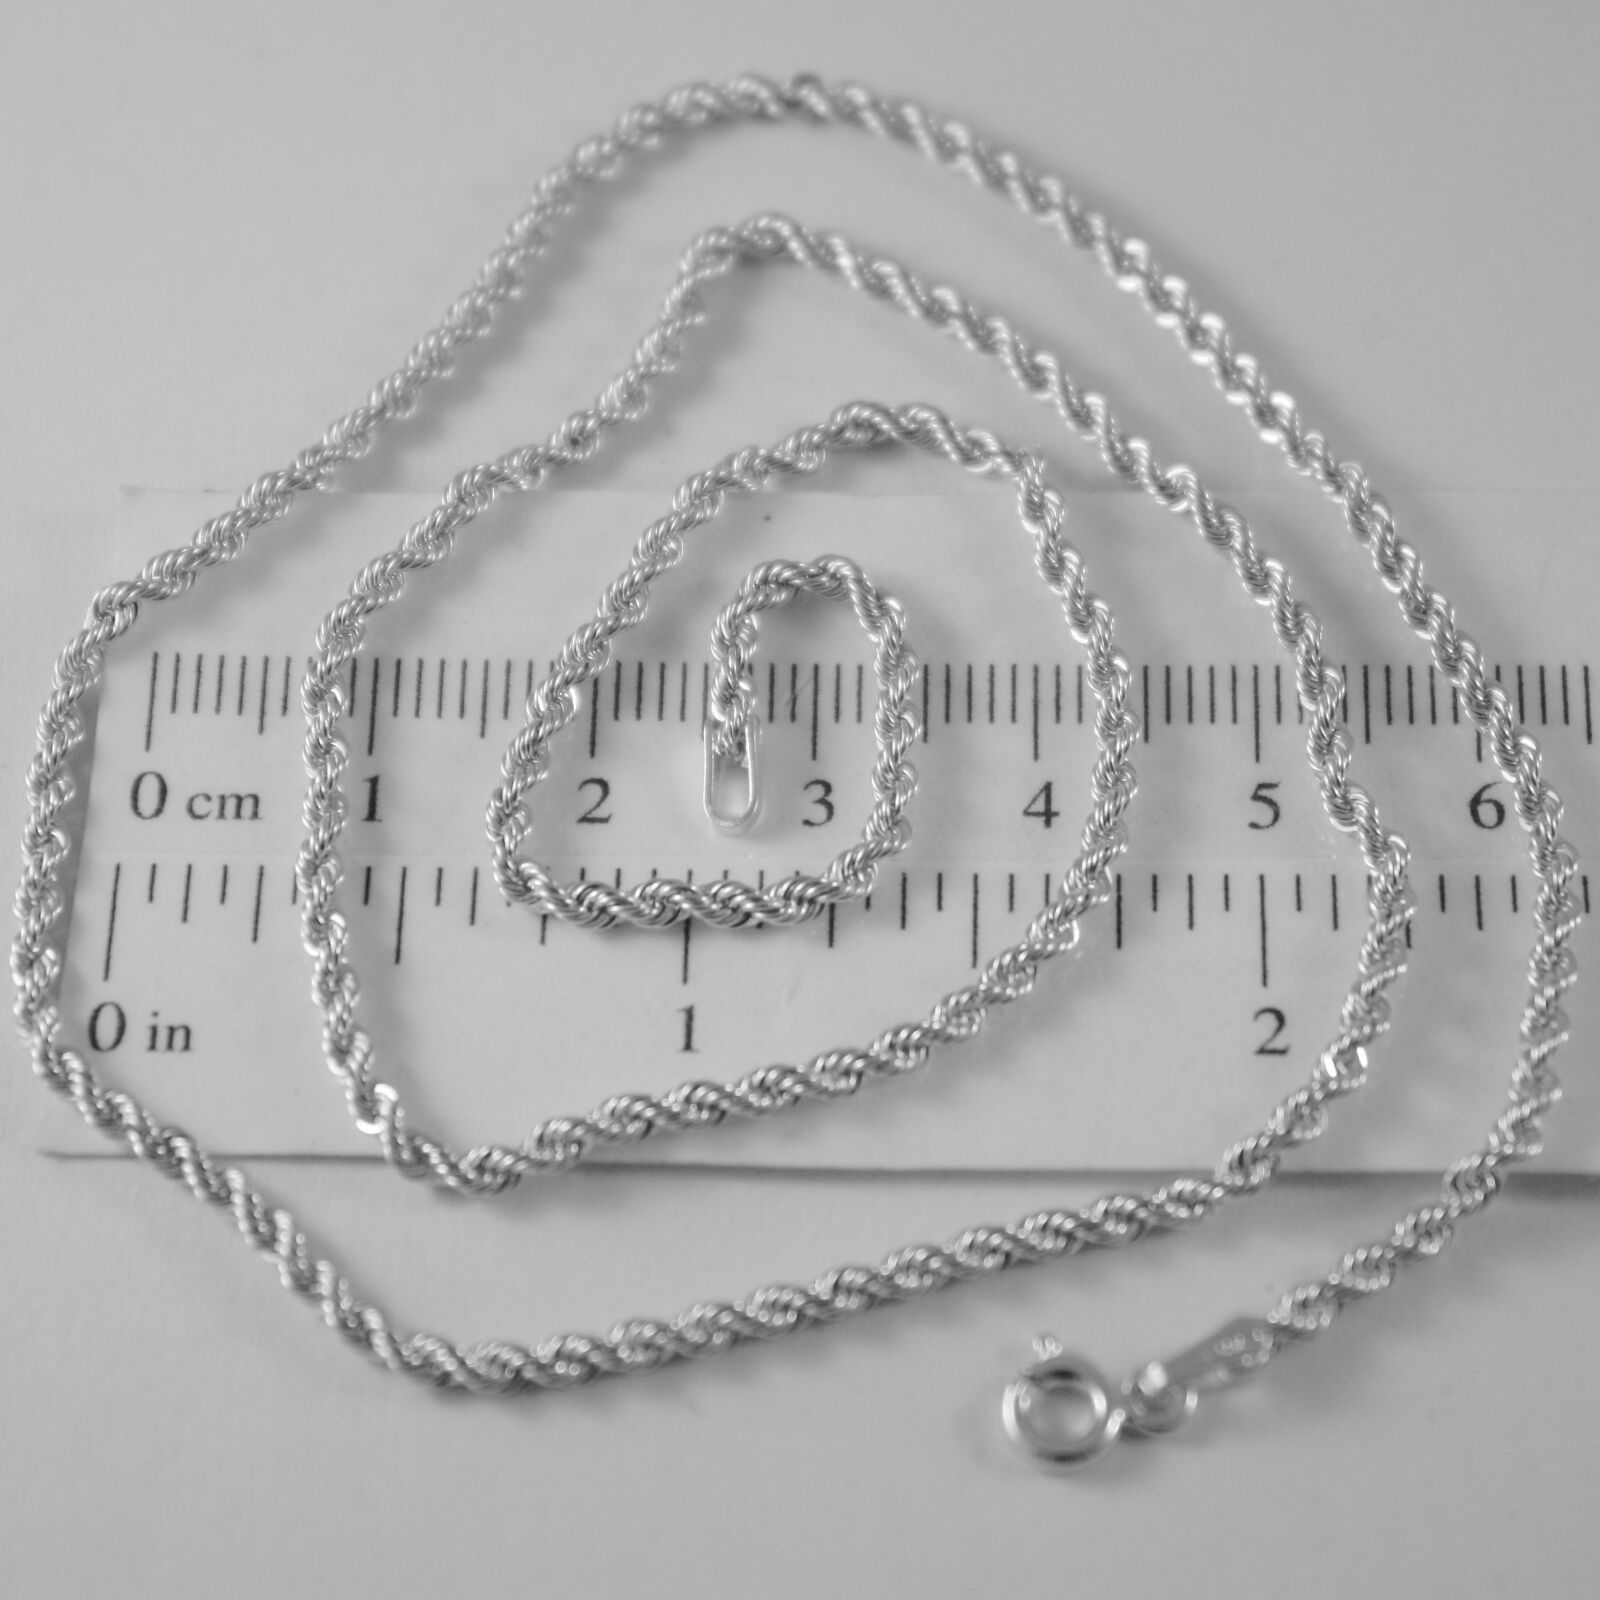 18K WHITE GOLD CHAIN NECKLACE BRAID ROPE LINK 23.62 INCHES, 2.5 MM MADE IN ITALY